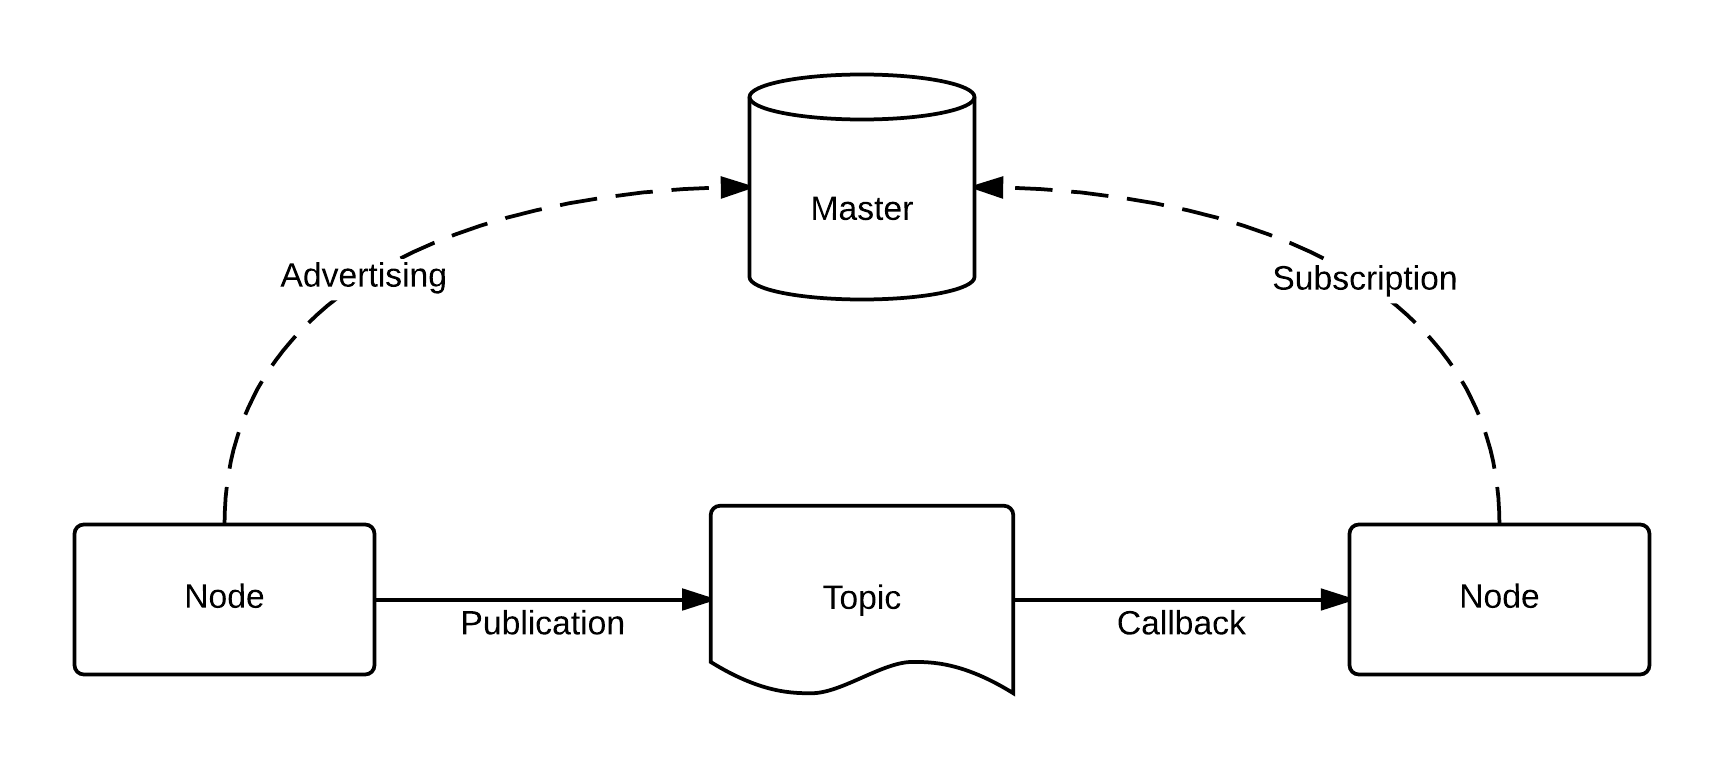 File:ROS-master-node-topic png - Wikimedia Commons